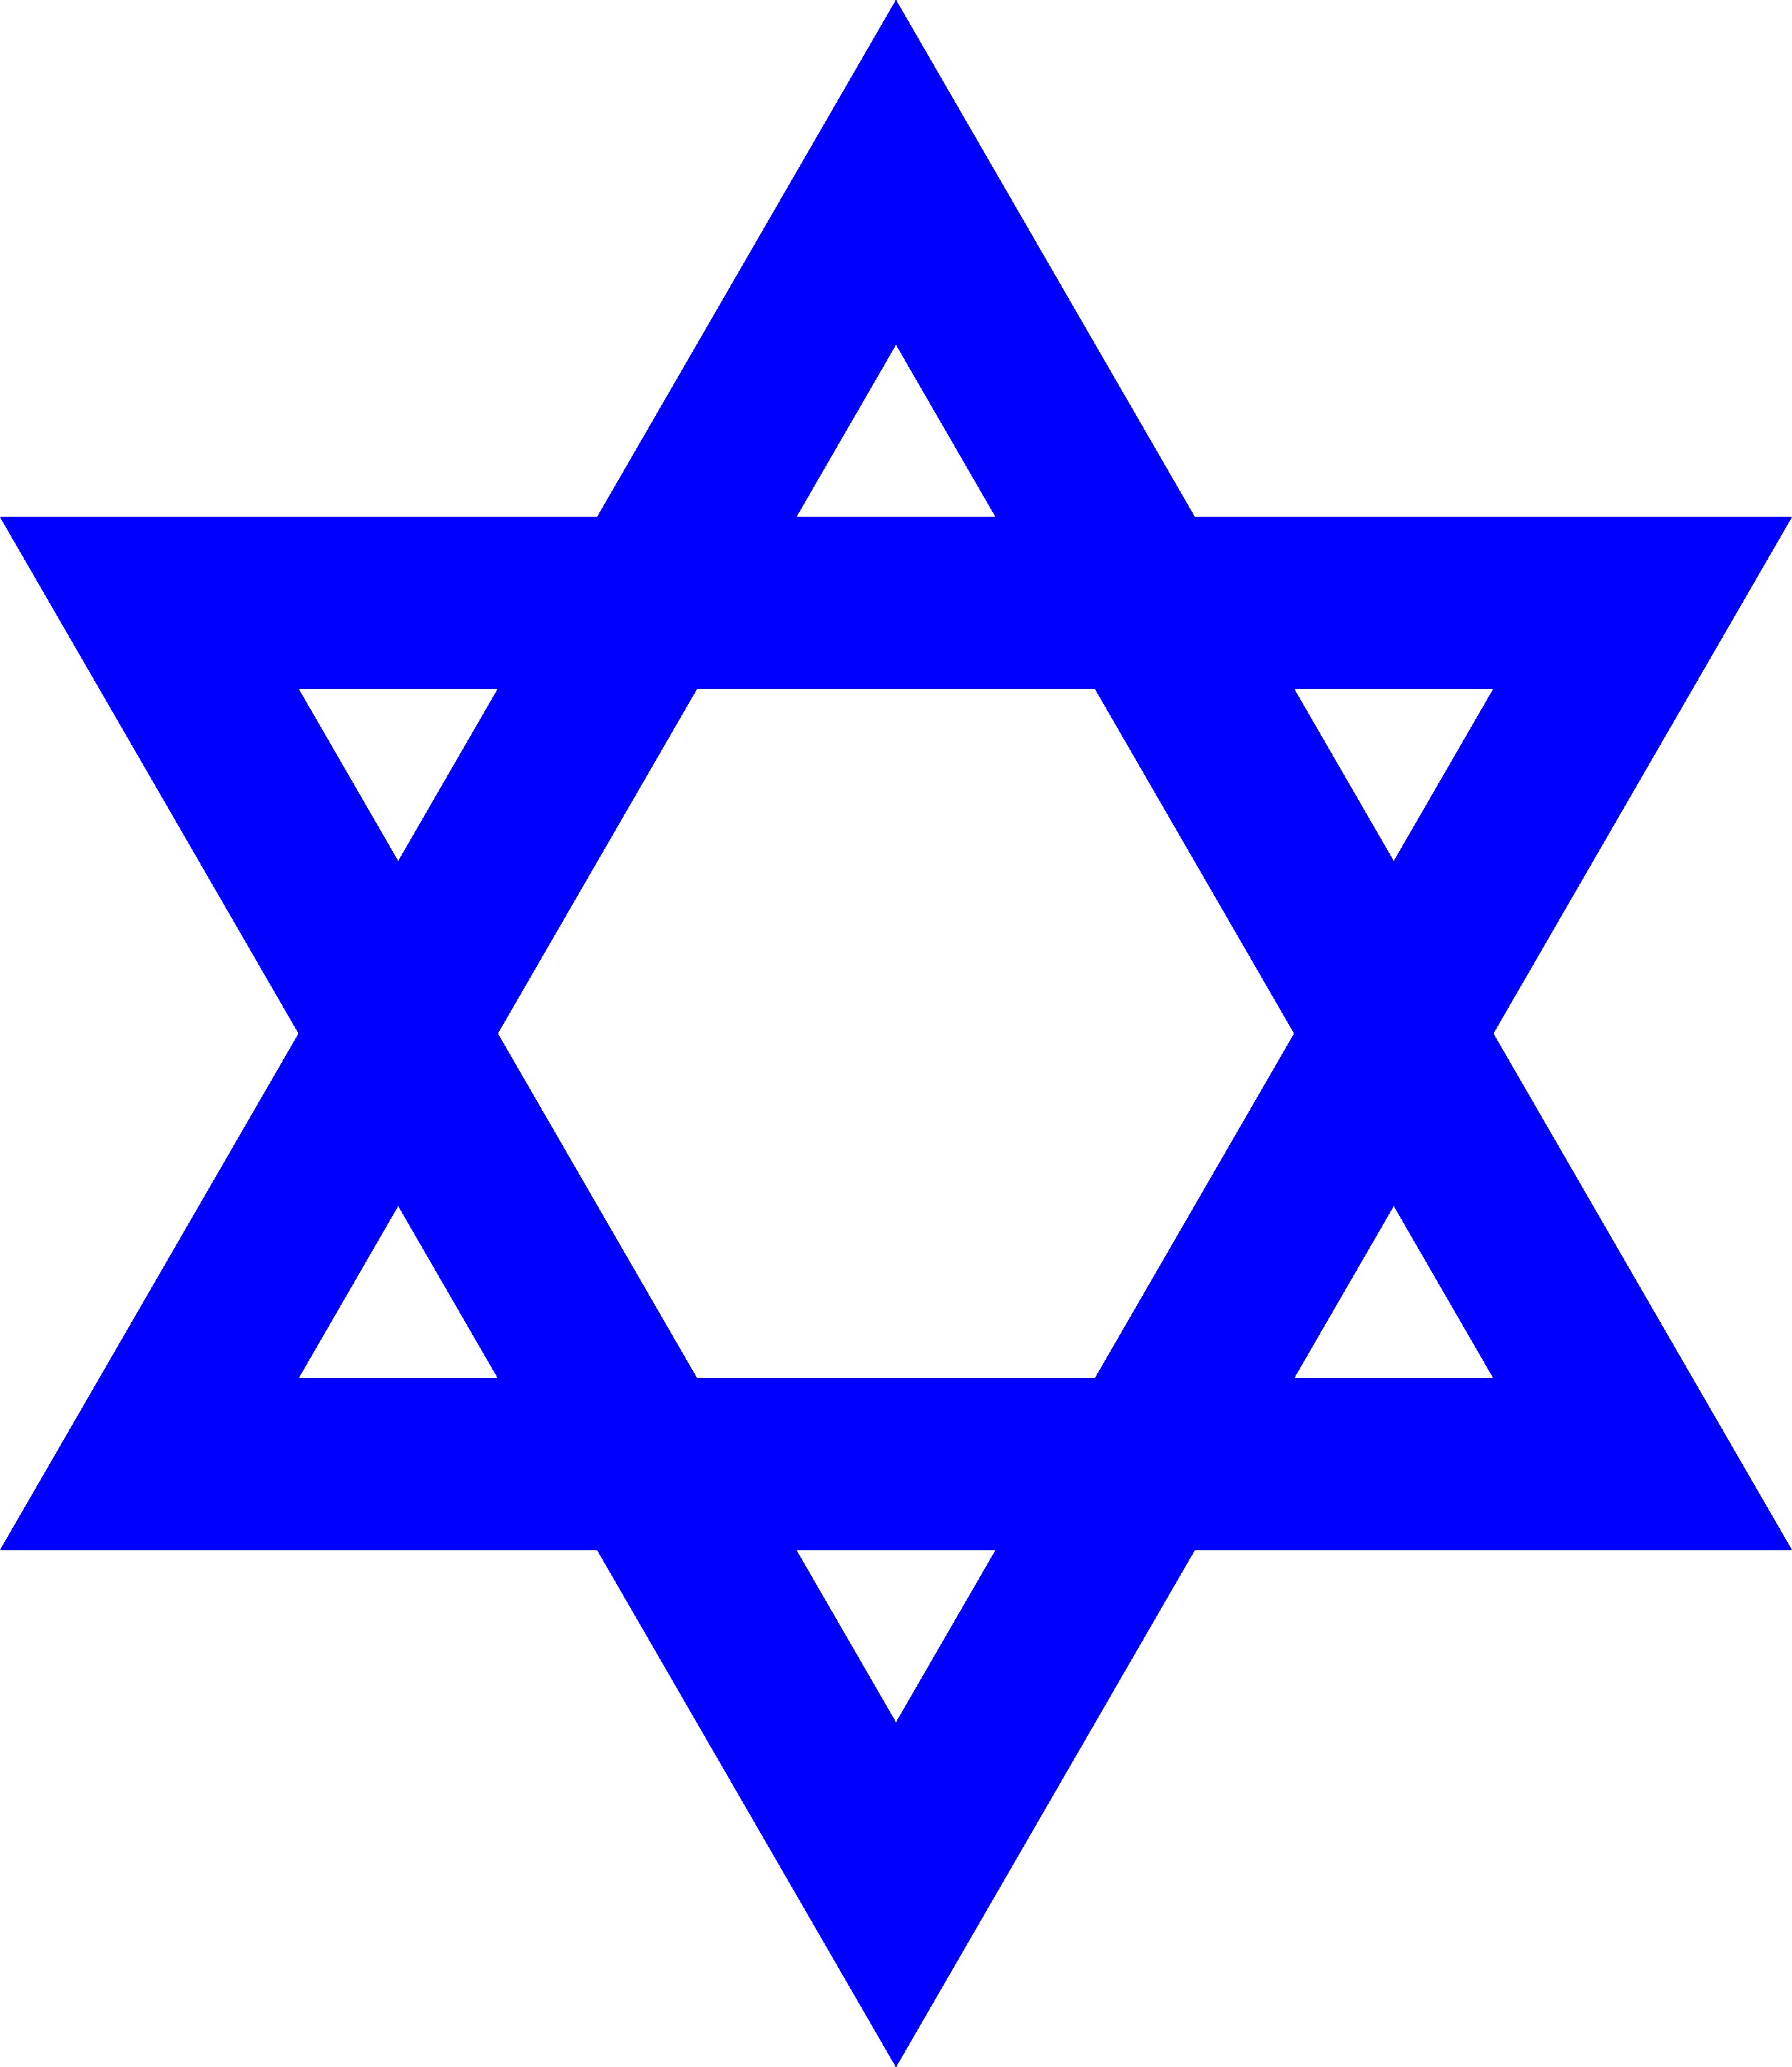 star of david jewish art judaism and middle ages rh pinterest com Star of David Clip Art Star of David Clip Art